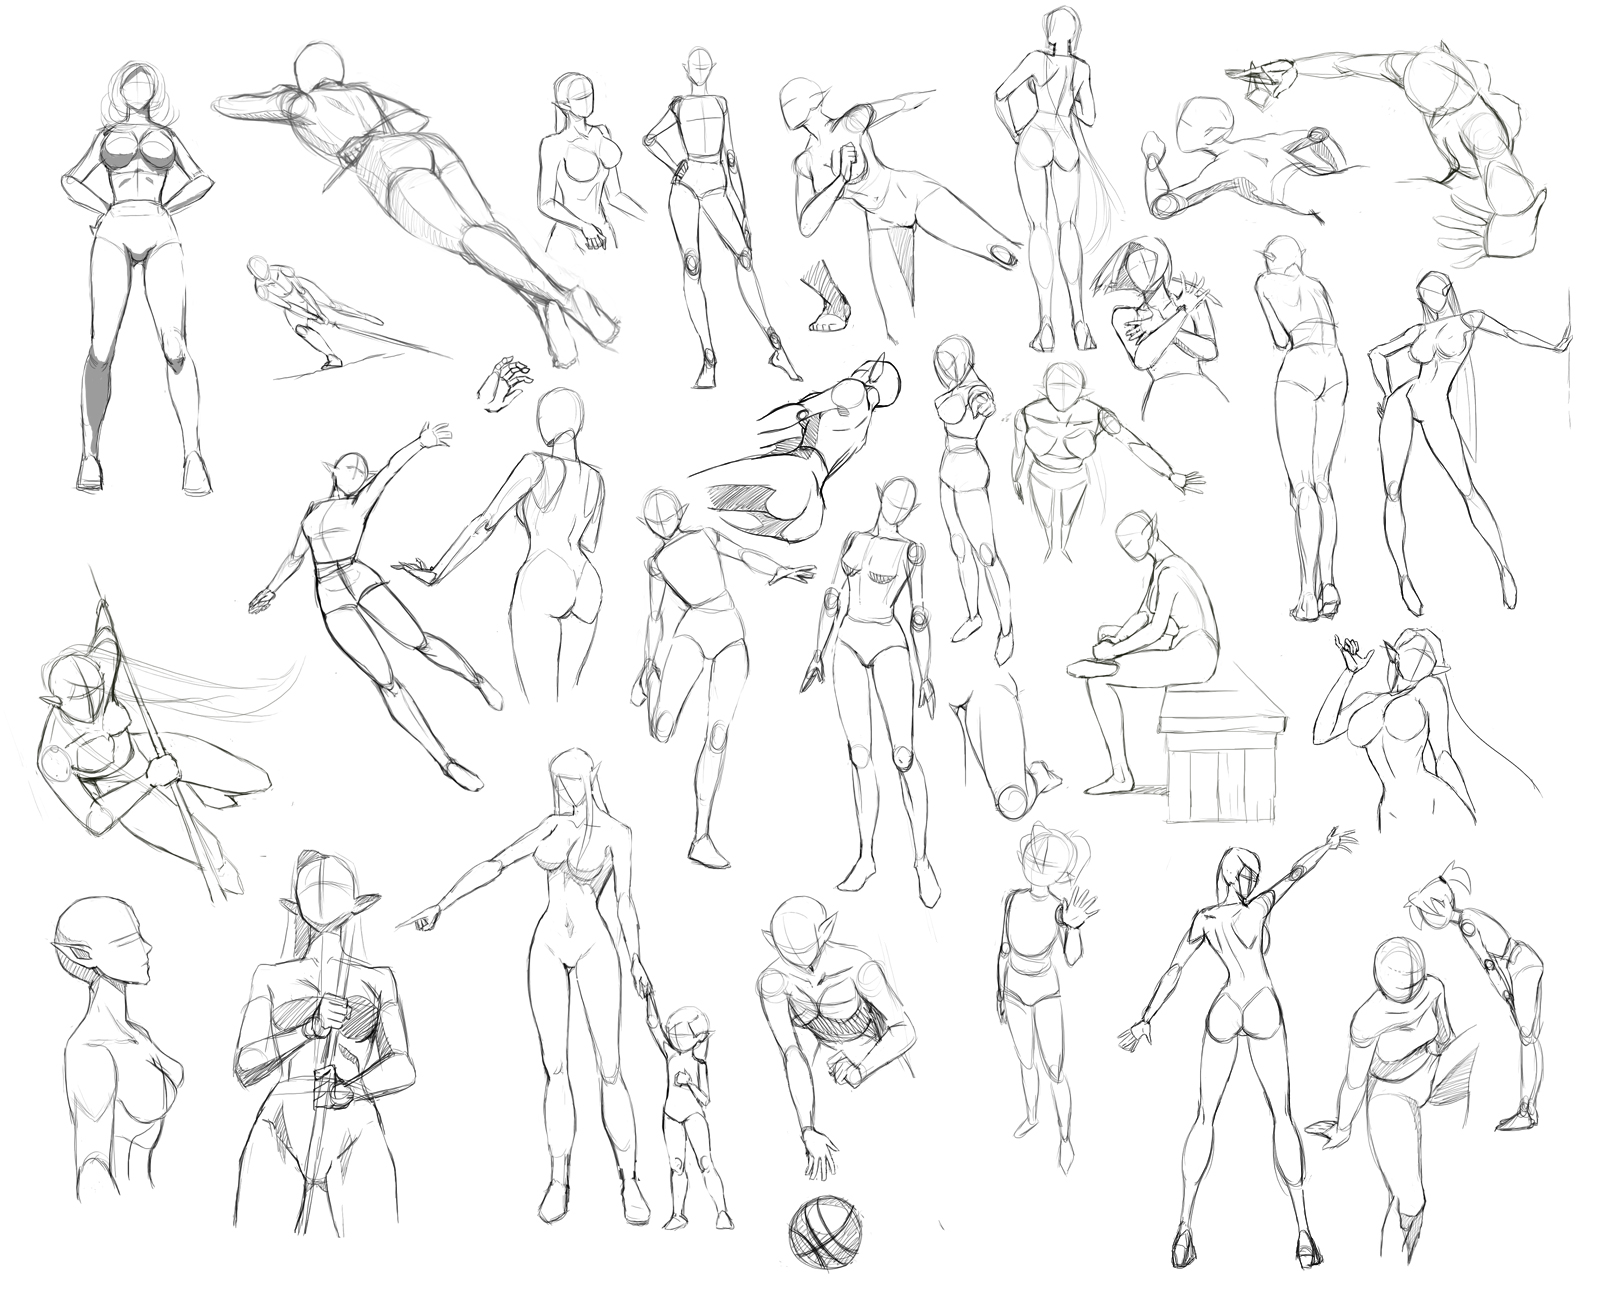 the basic composition of kneeling figures in studying